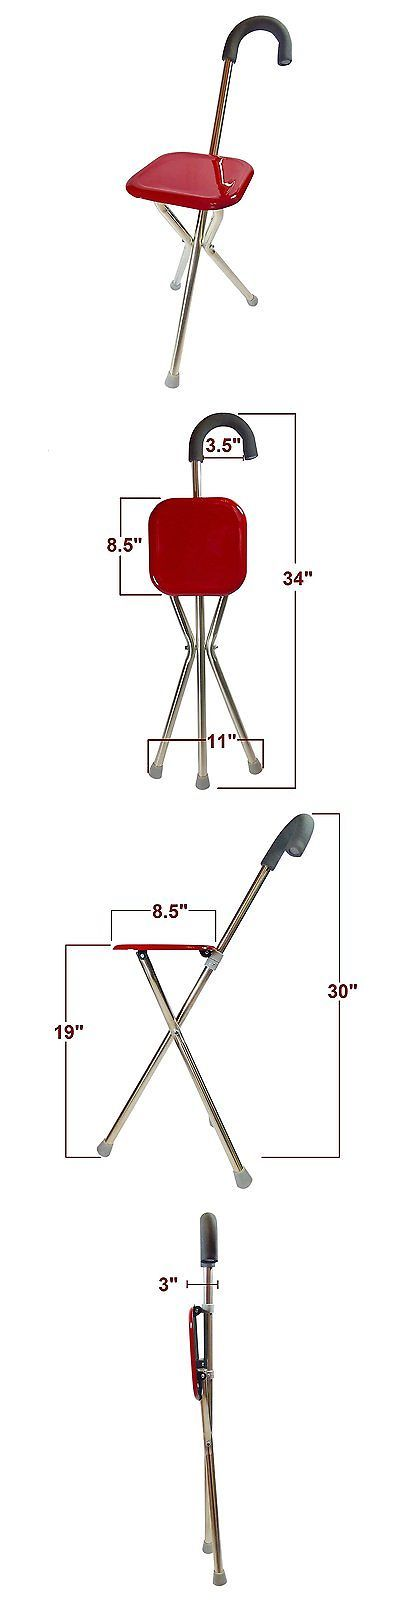 Walkers and Canes: Walking Cane With Seat - Doubles As A Folding Walking Stick And A Tripod Seat - -> BUY IT NOW ONLY: $32.97 on eBay!